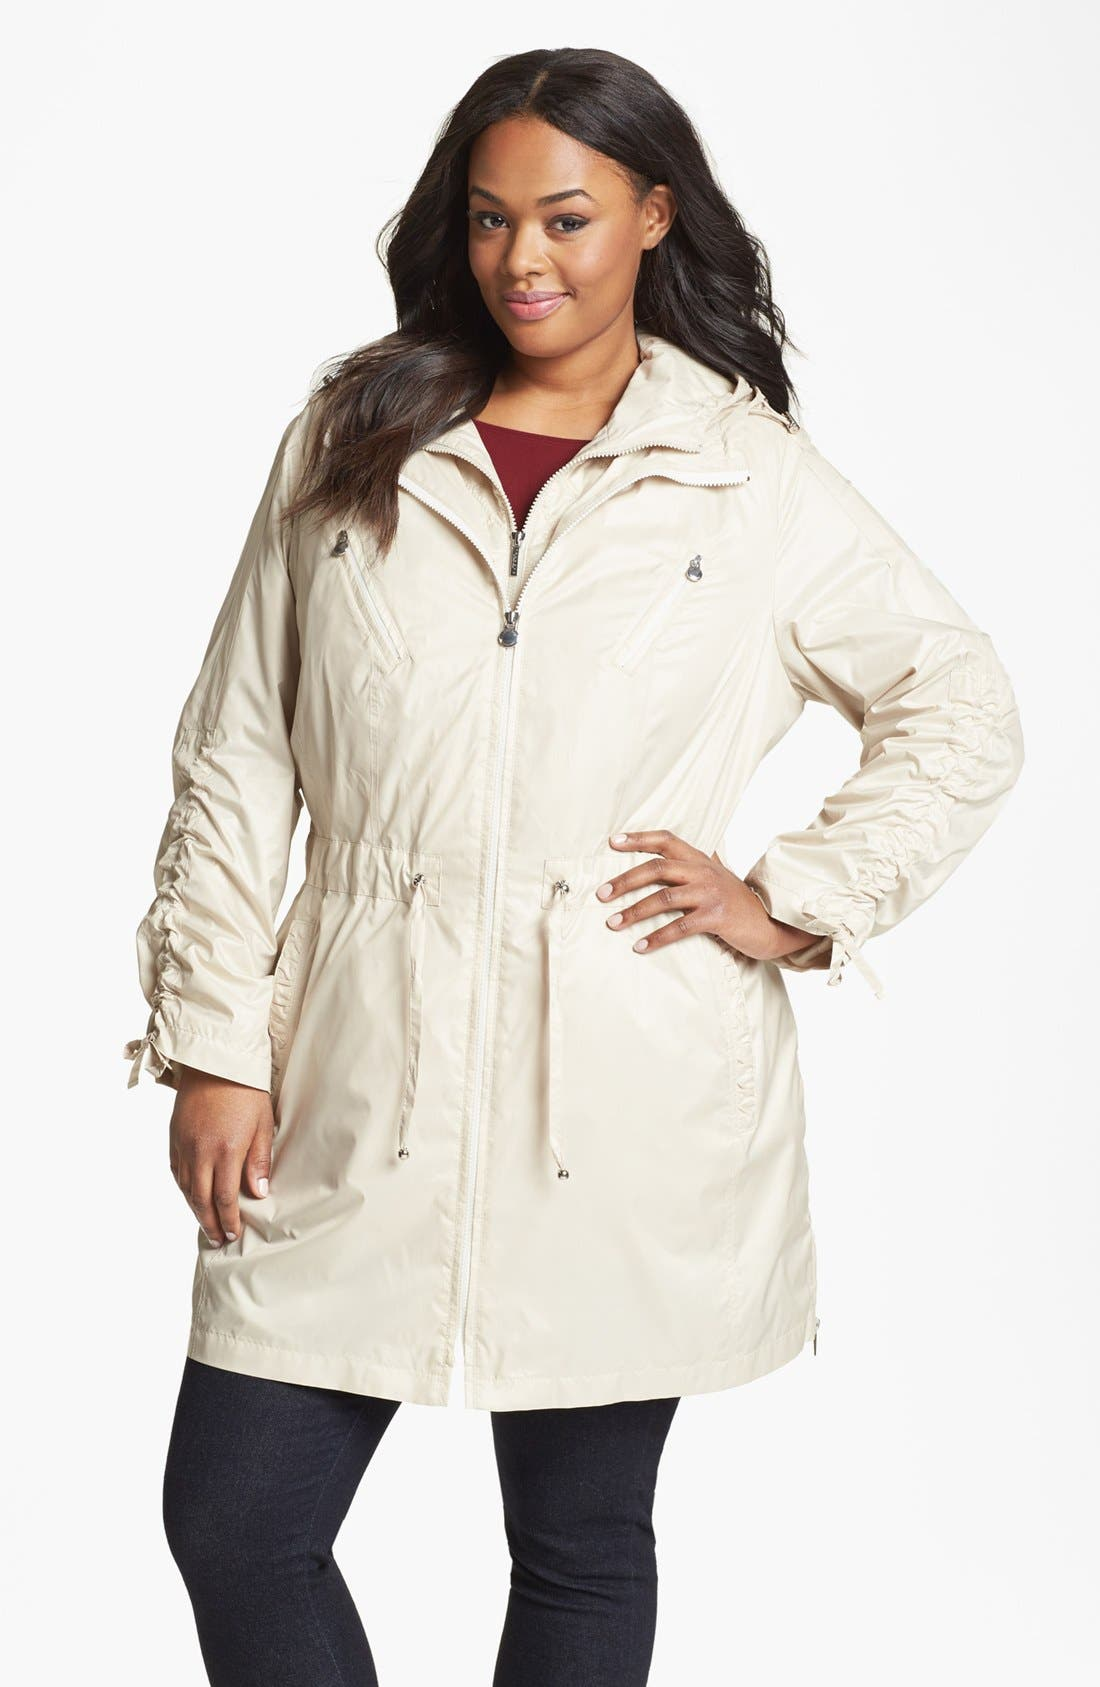 Main Image - Laundry by Shelli Segal 3-in-1 Jacket (Plus Size)